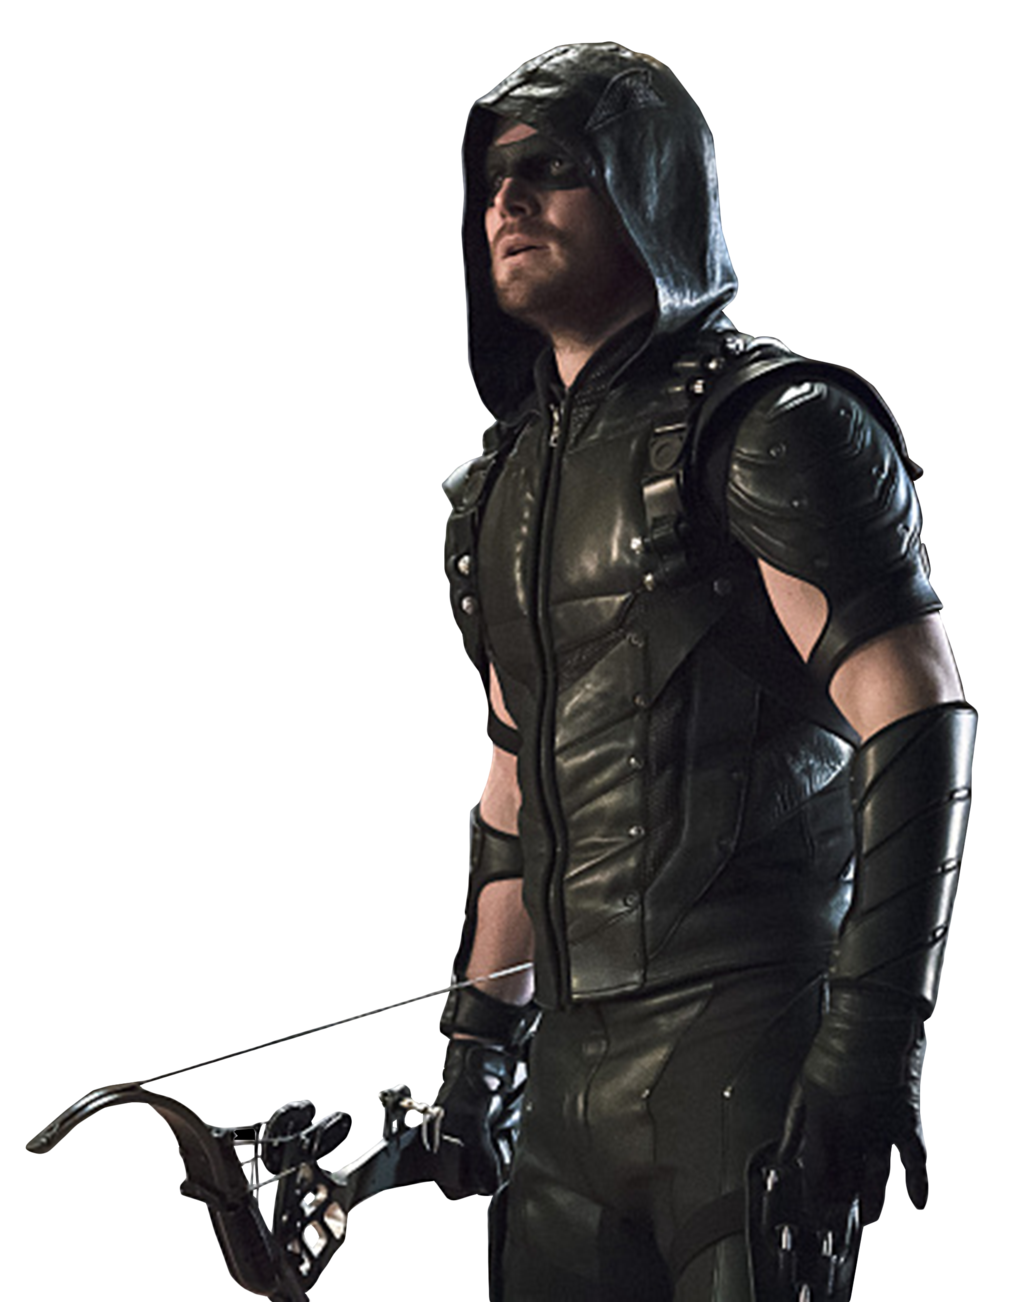 Dc green arrow png. Arqueiro verde oliver queen